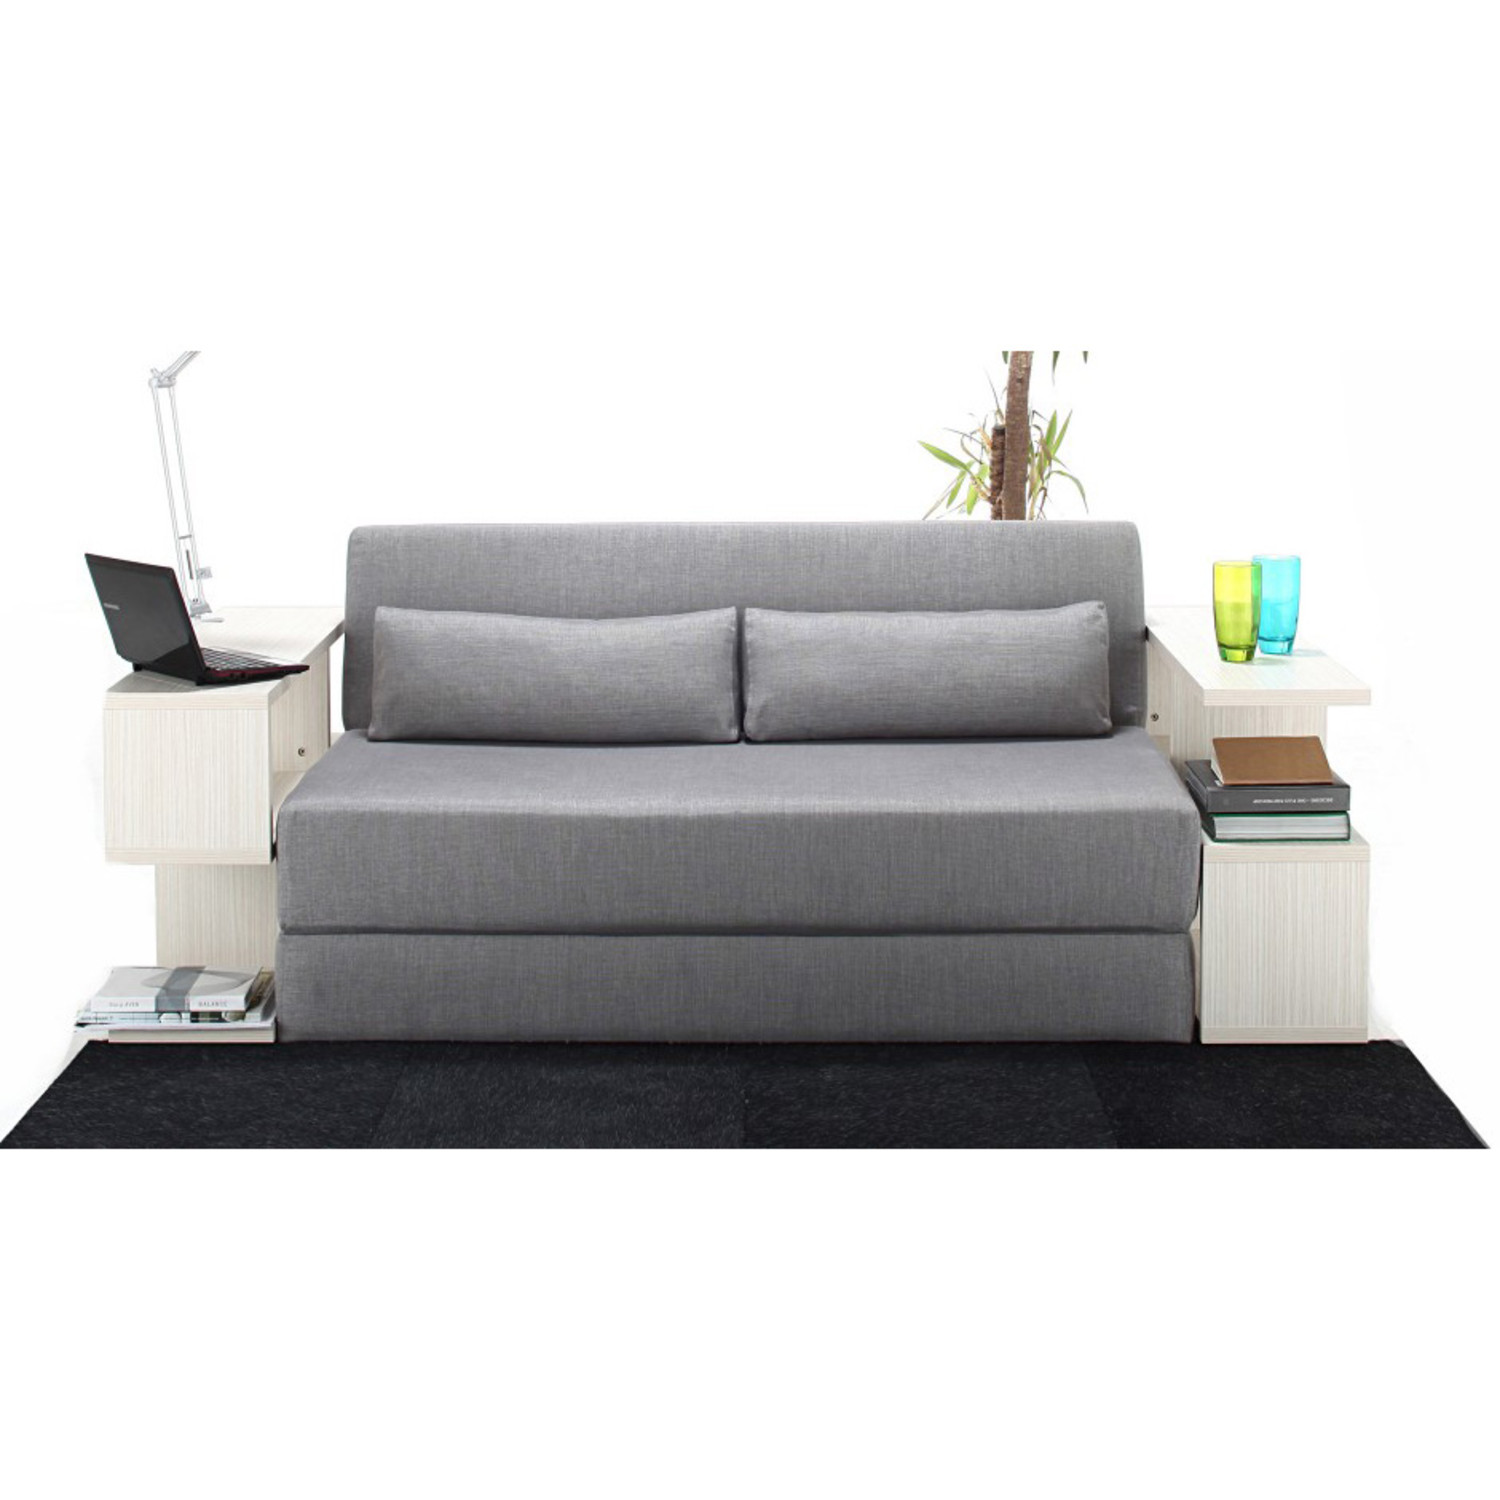 light green sofa bed sam s club harper leather seatpacking grey nyfu touch of modern